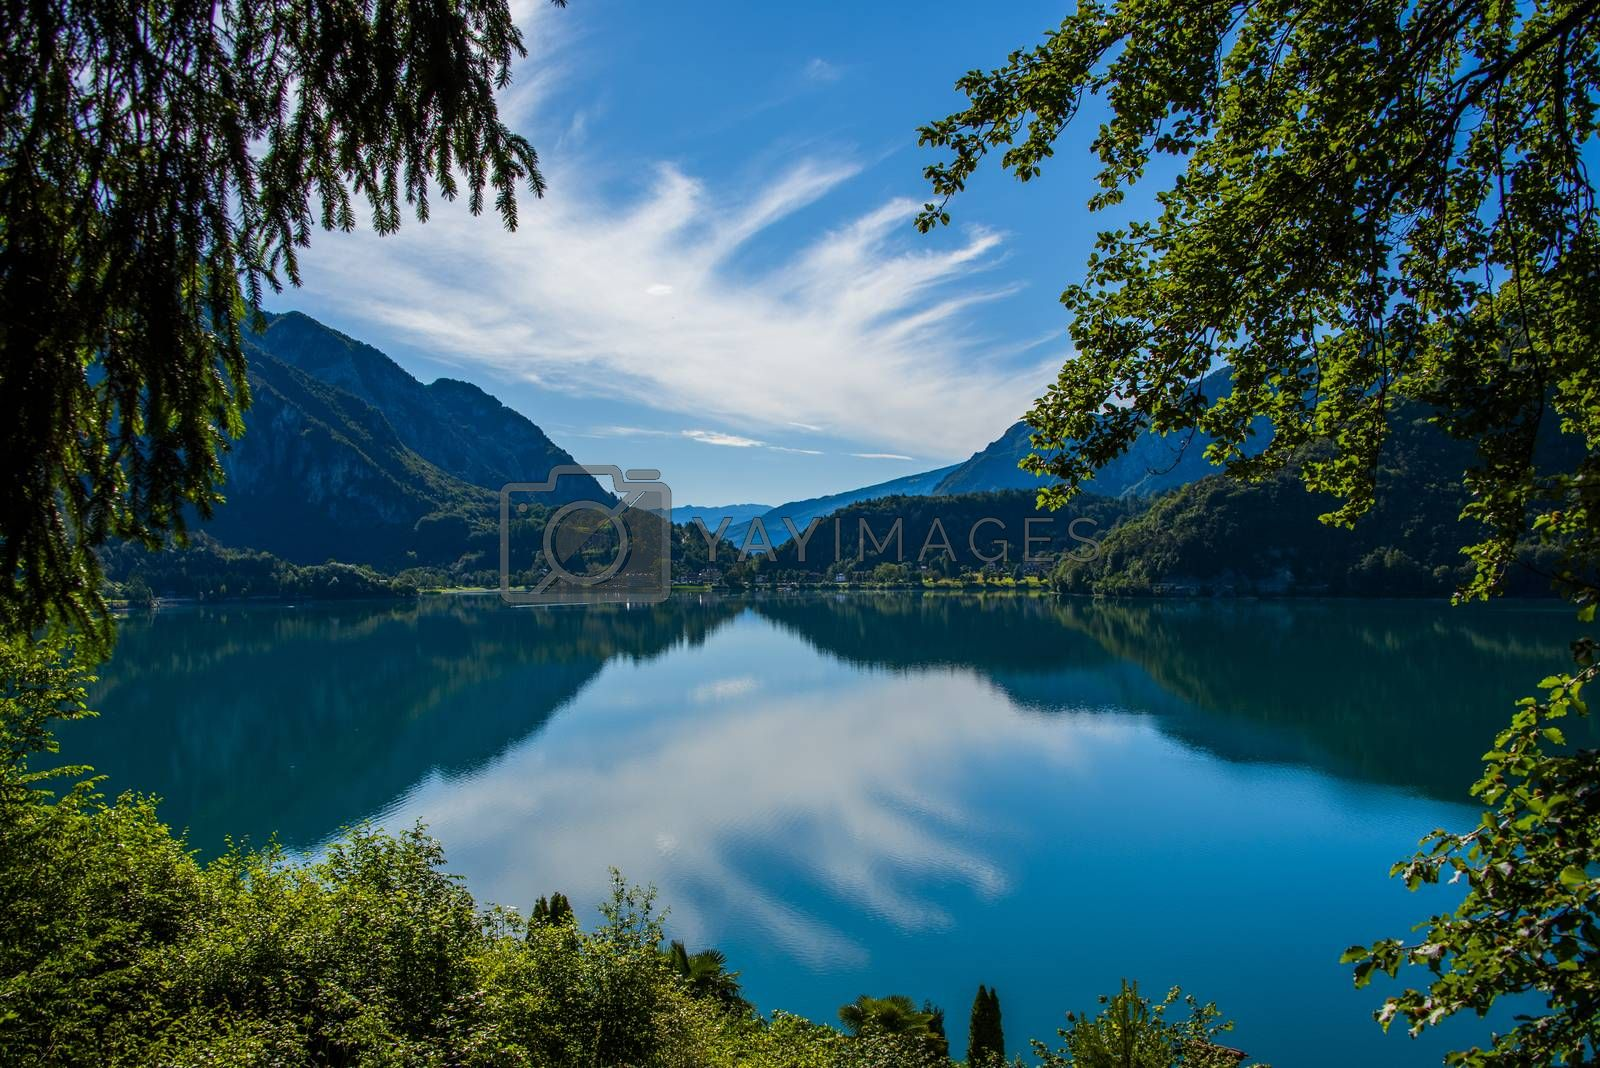 beautiful view of Lake Ledro with pontoon boats, villages and the daily life of a mountain lake in the Alps in Trento, Italy